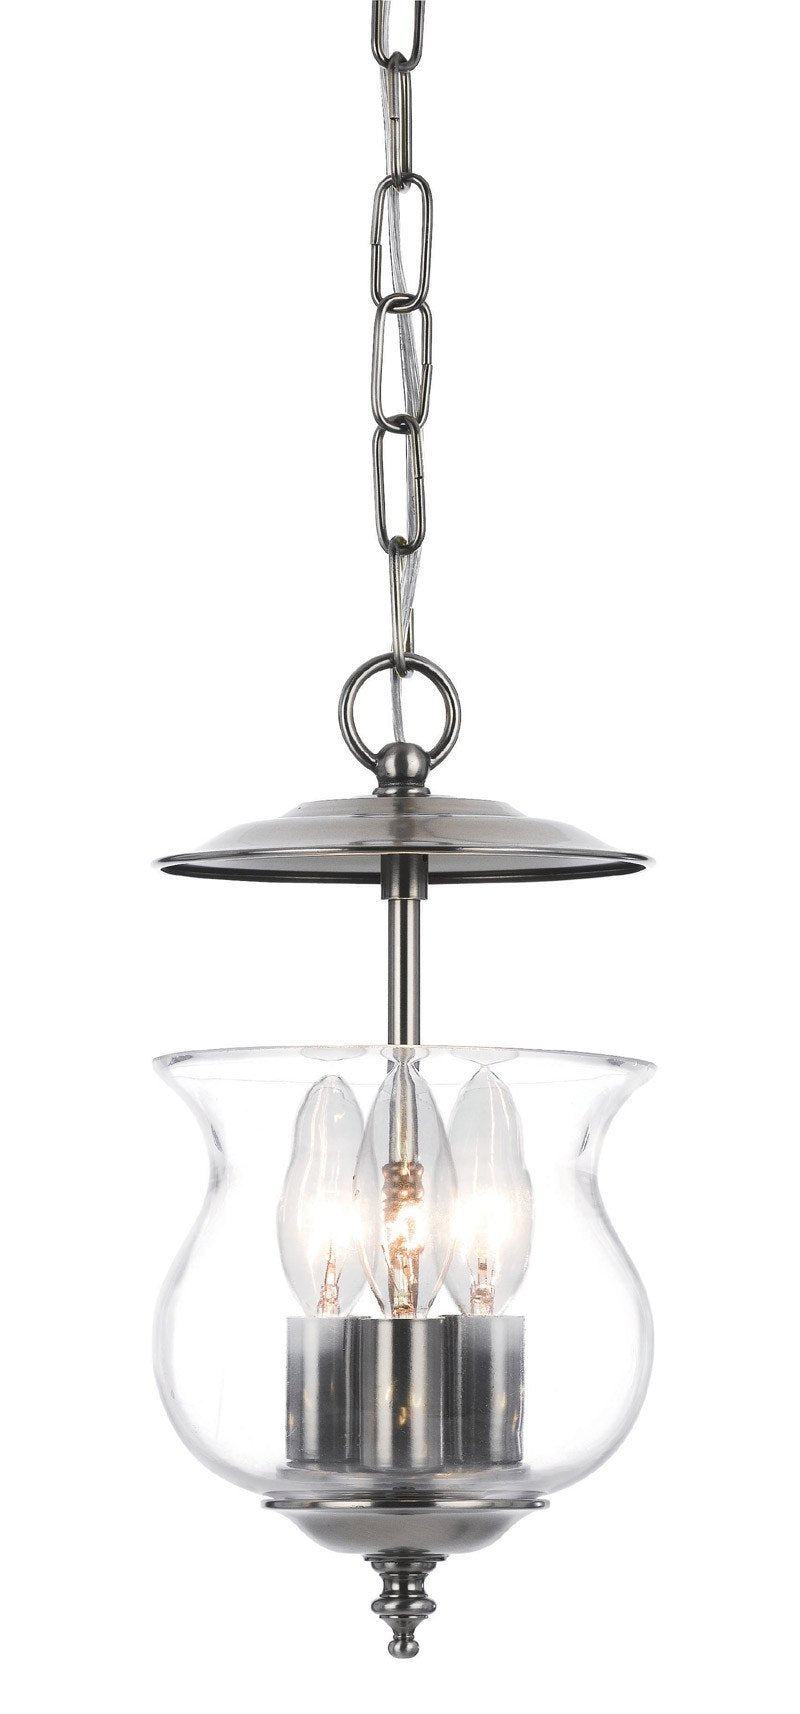 Crystorama 5717-PW 3-Lights Traditional Bell Jar Finished In Pewter. - Pewter from Crystorama